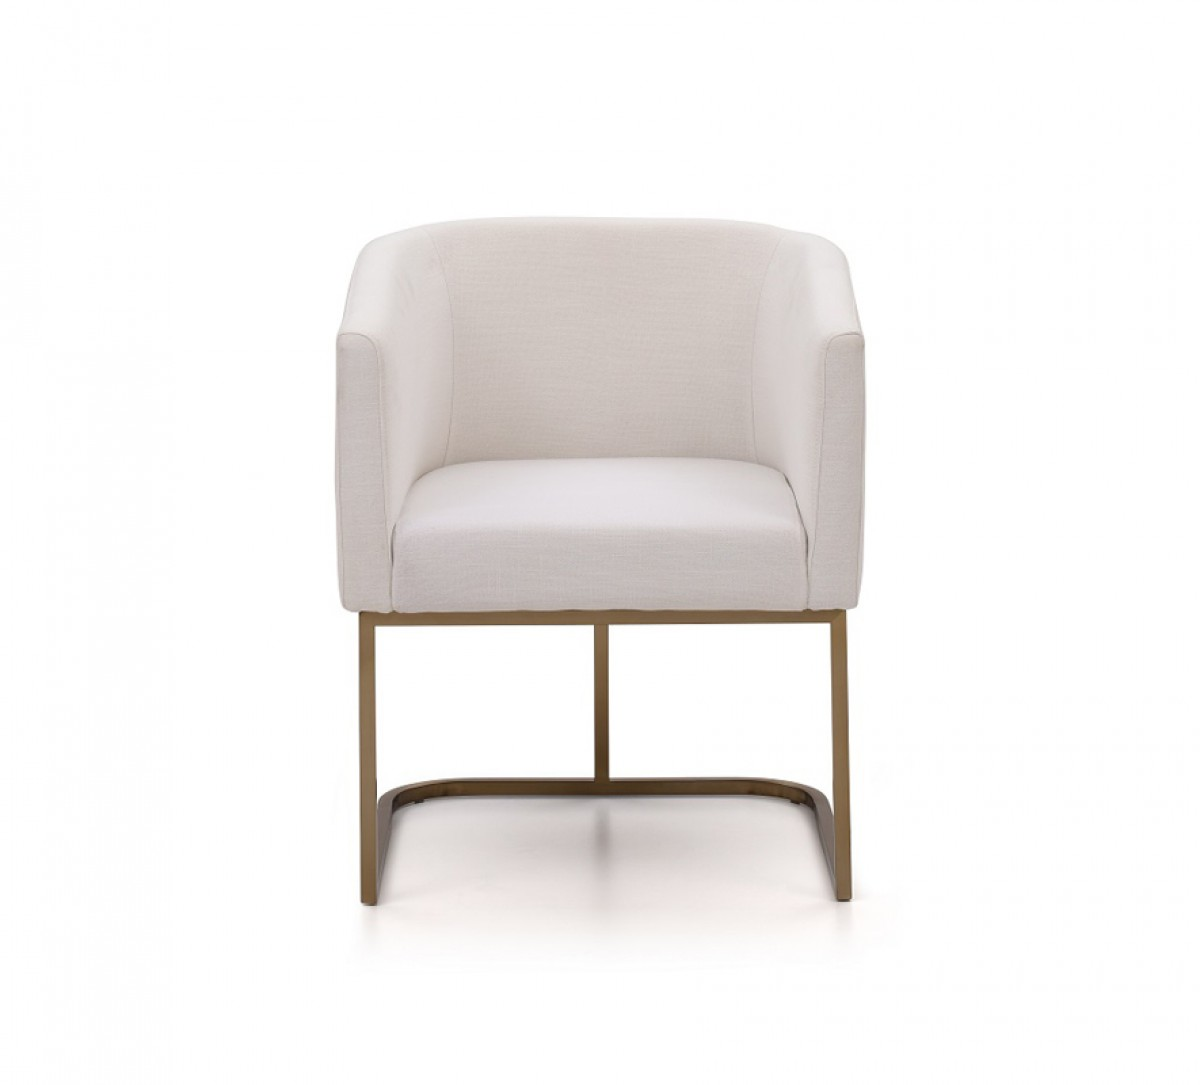 white fabric dining chairs chair cover rentals essex modrest yukon modern and antique brass